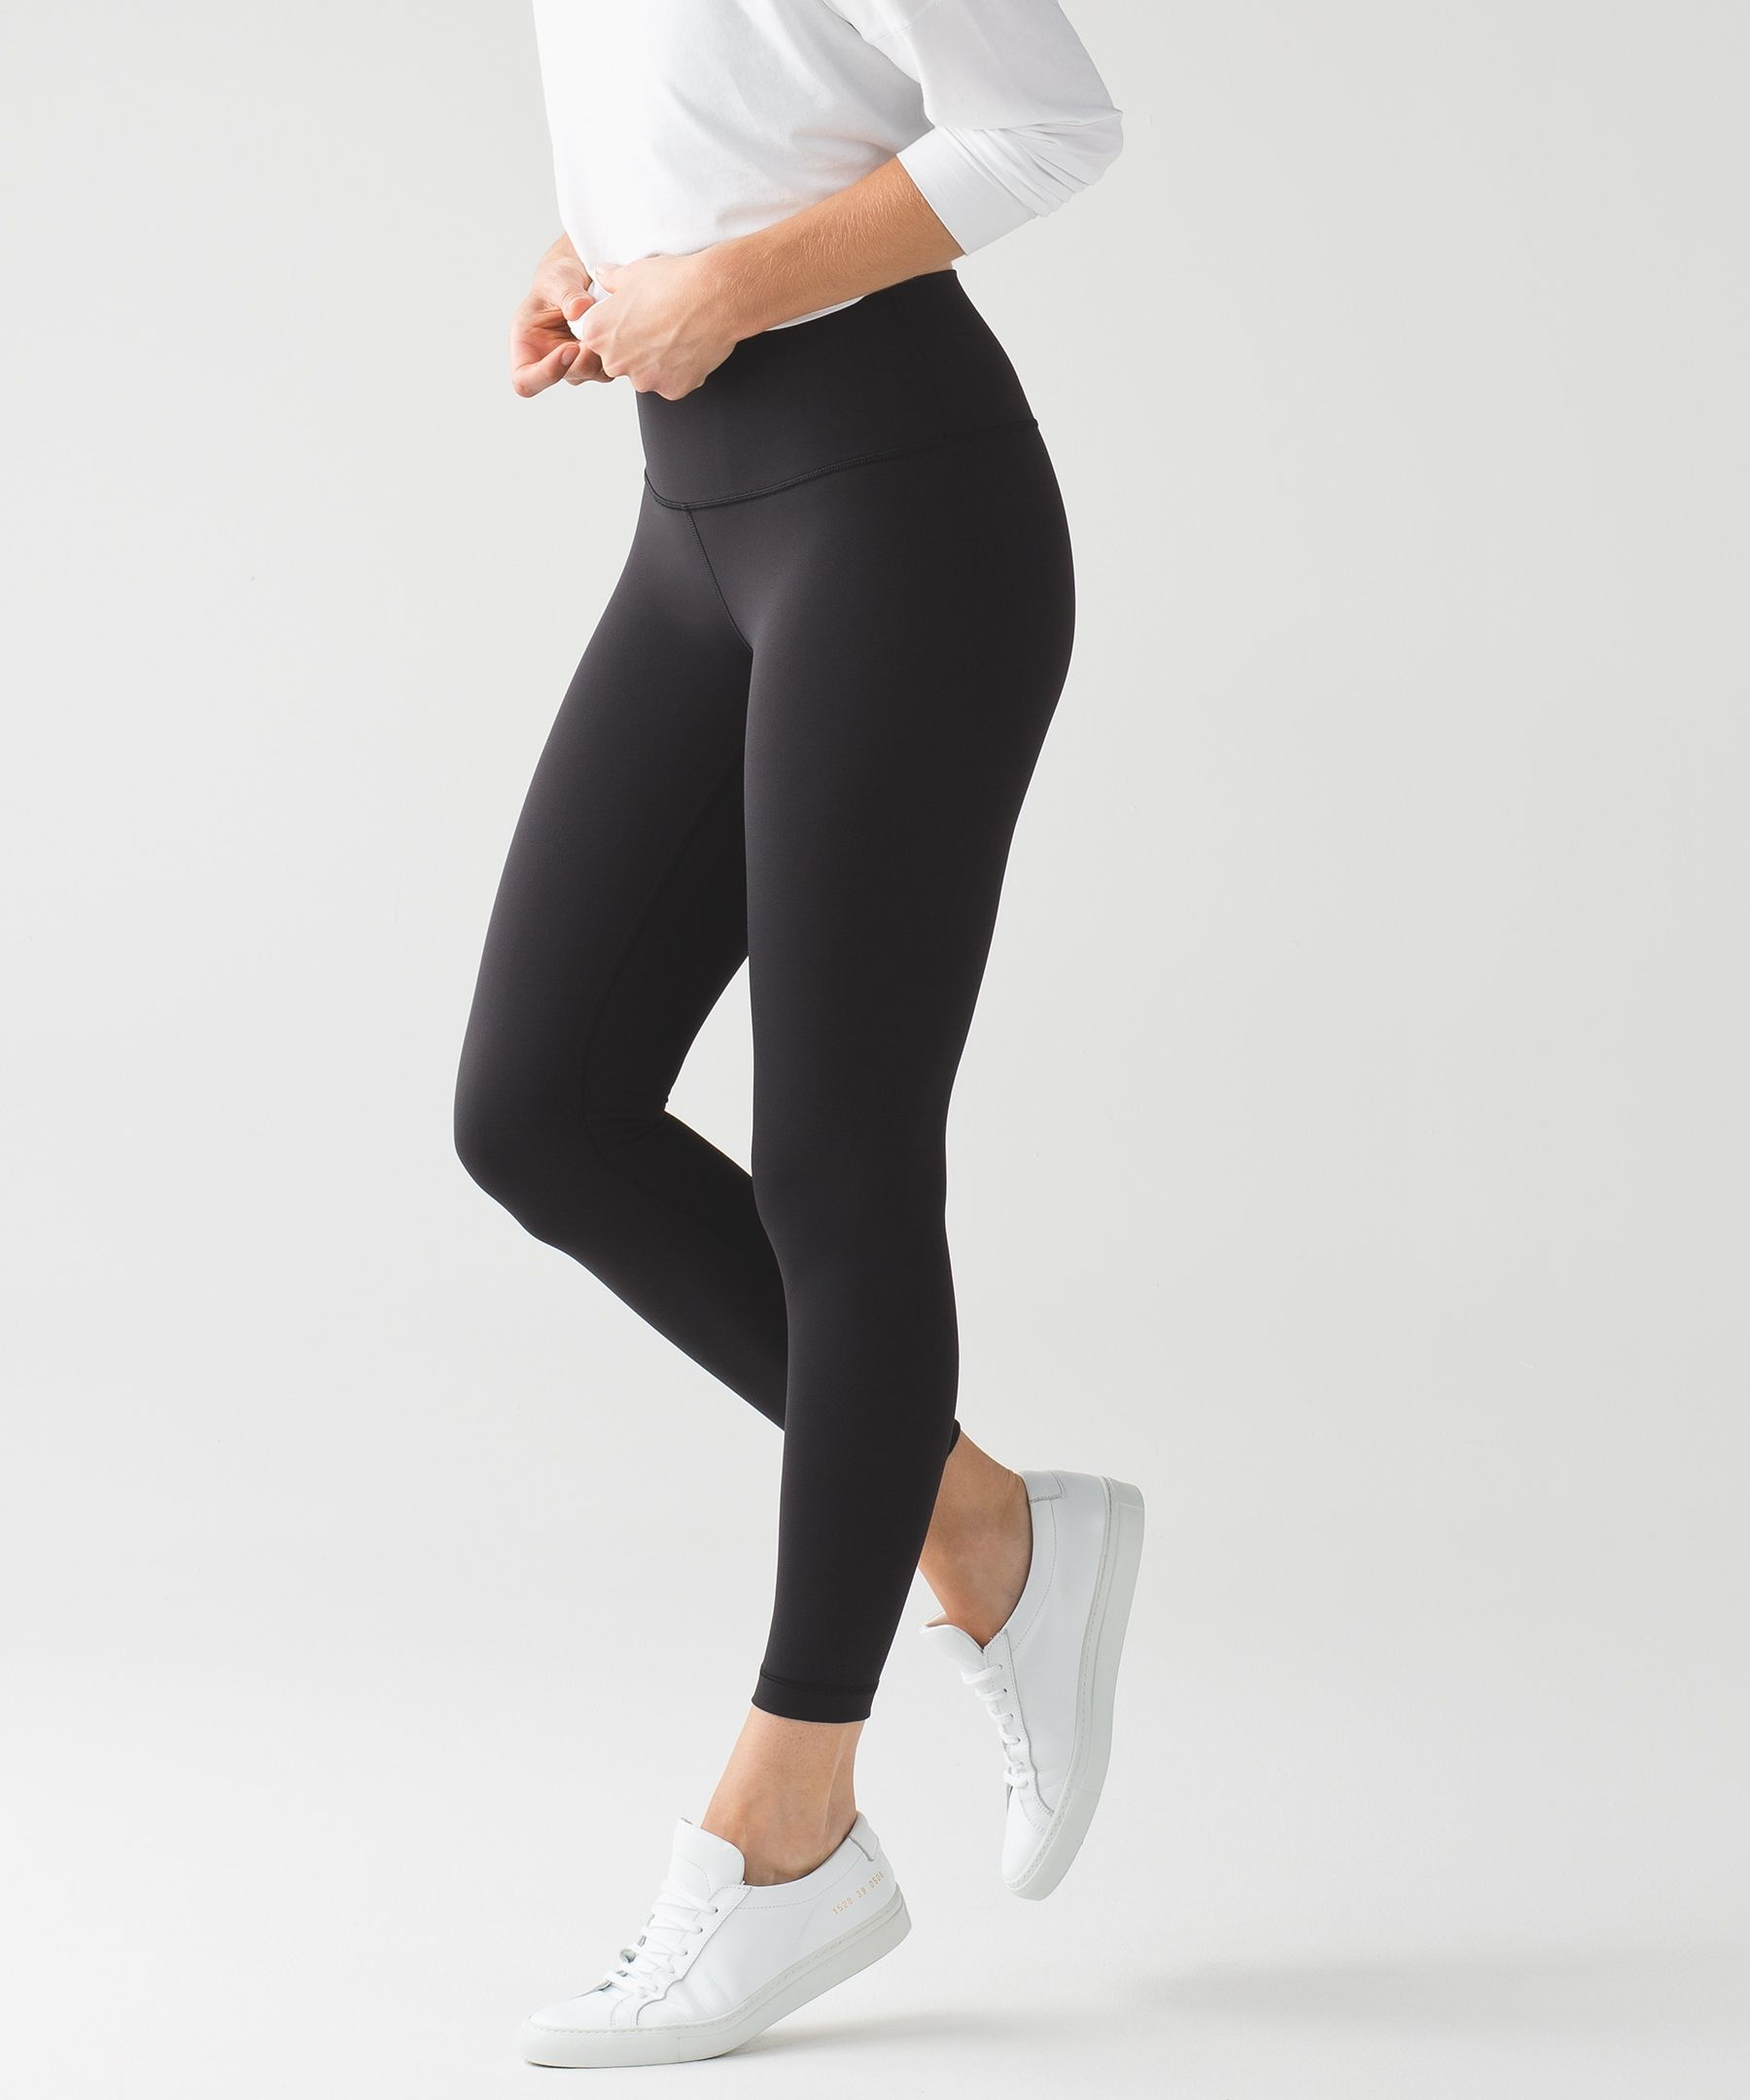 58a7b169166a19 High Times Pant *Full-On Luxtreme | Women's Yoga Pants | lululemon athletica  | @giftryapp